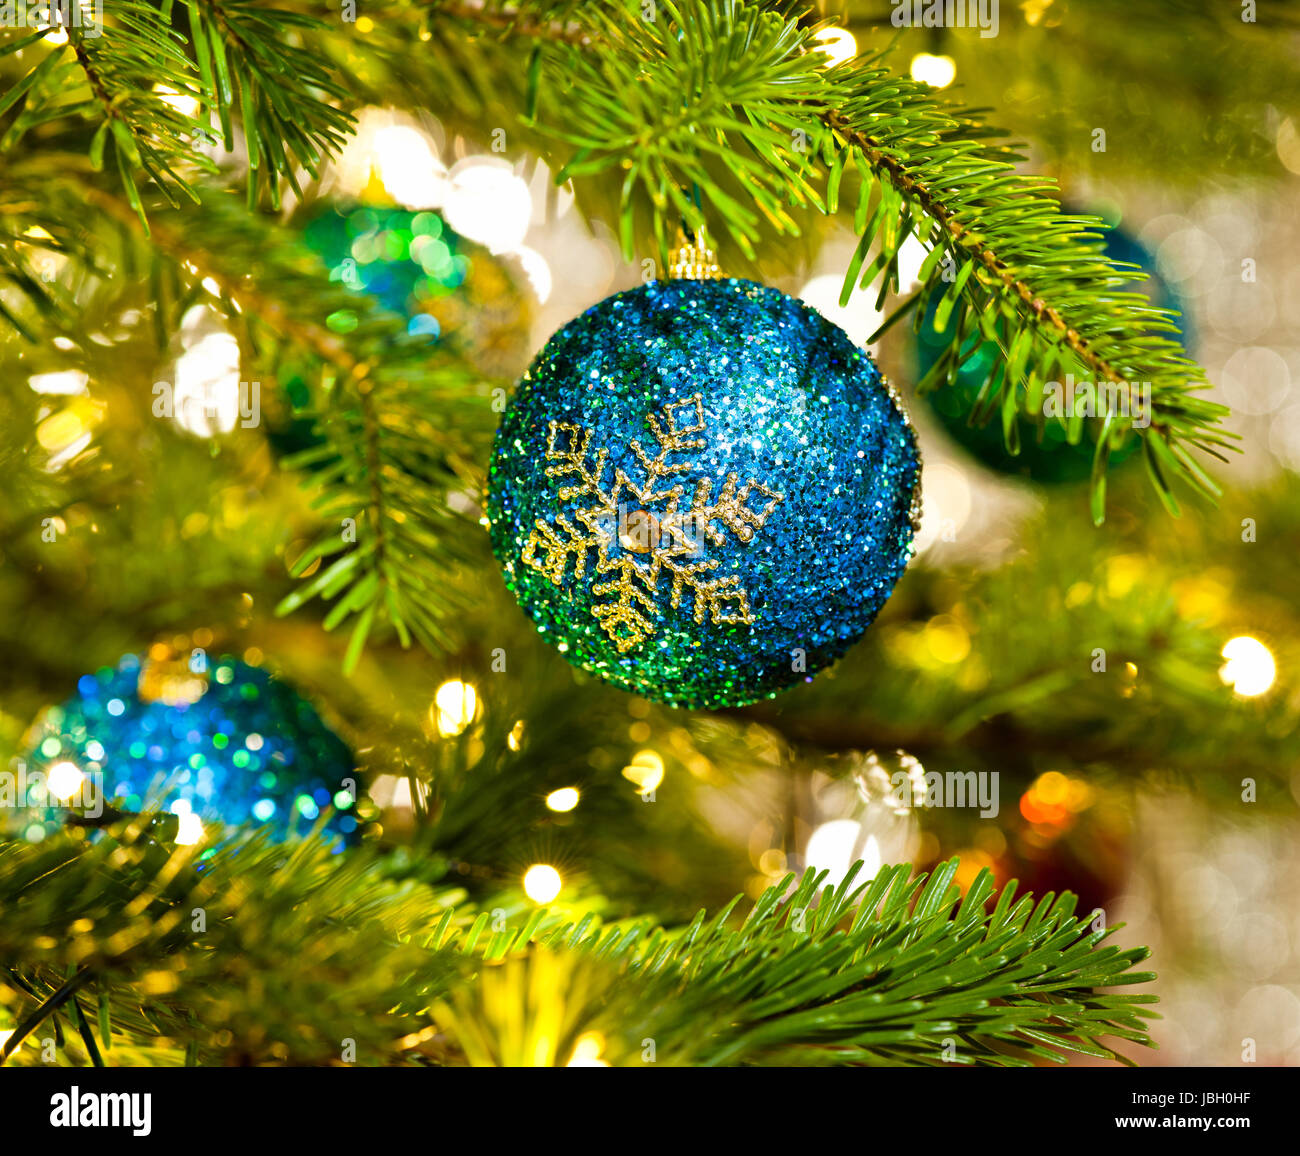 Bauble In A Real Christmas Tree In Bright Color Stock Photo Alamy